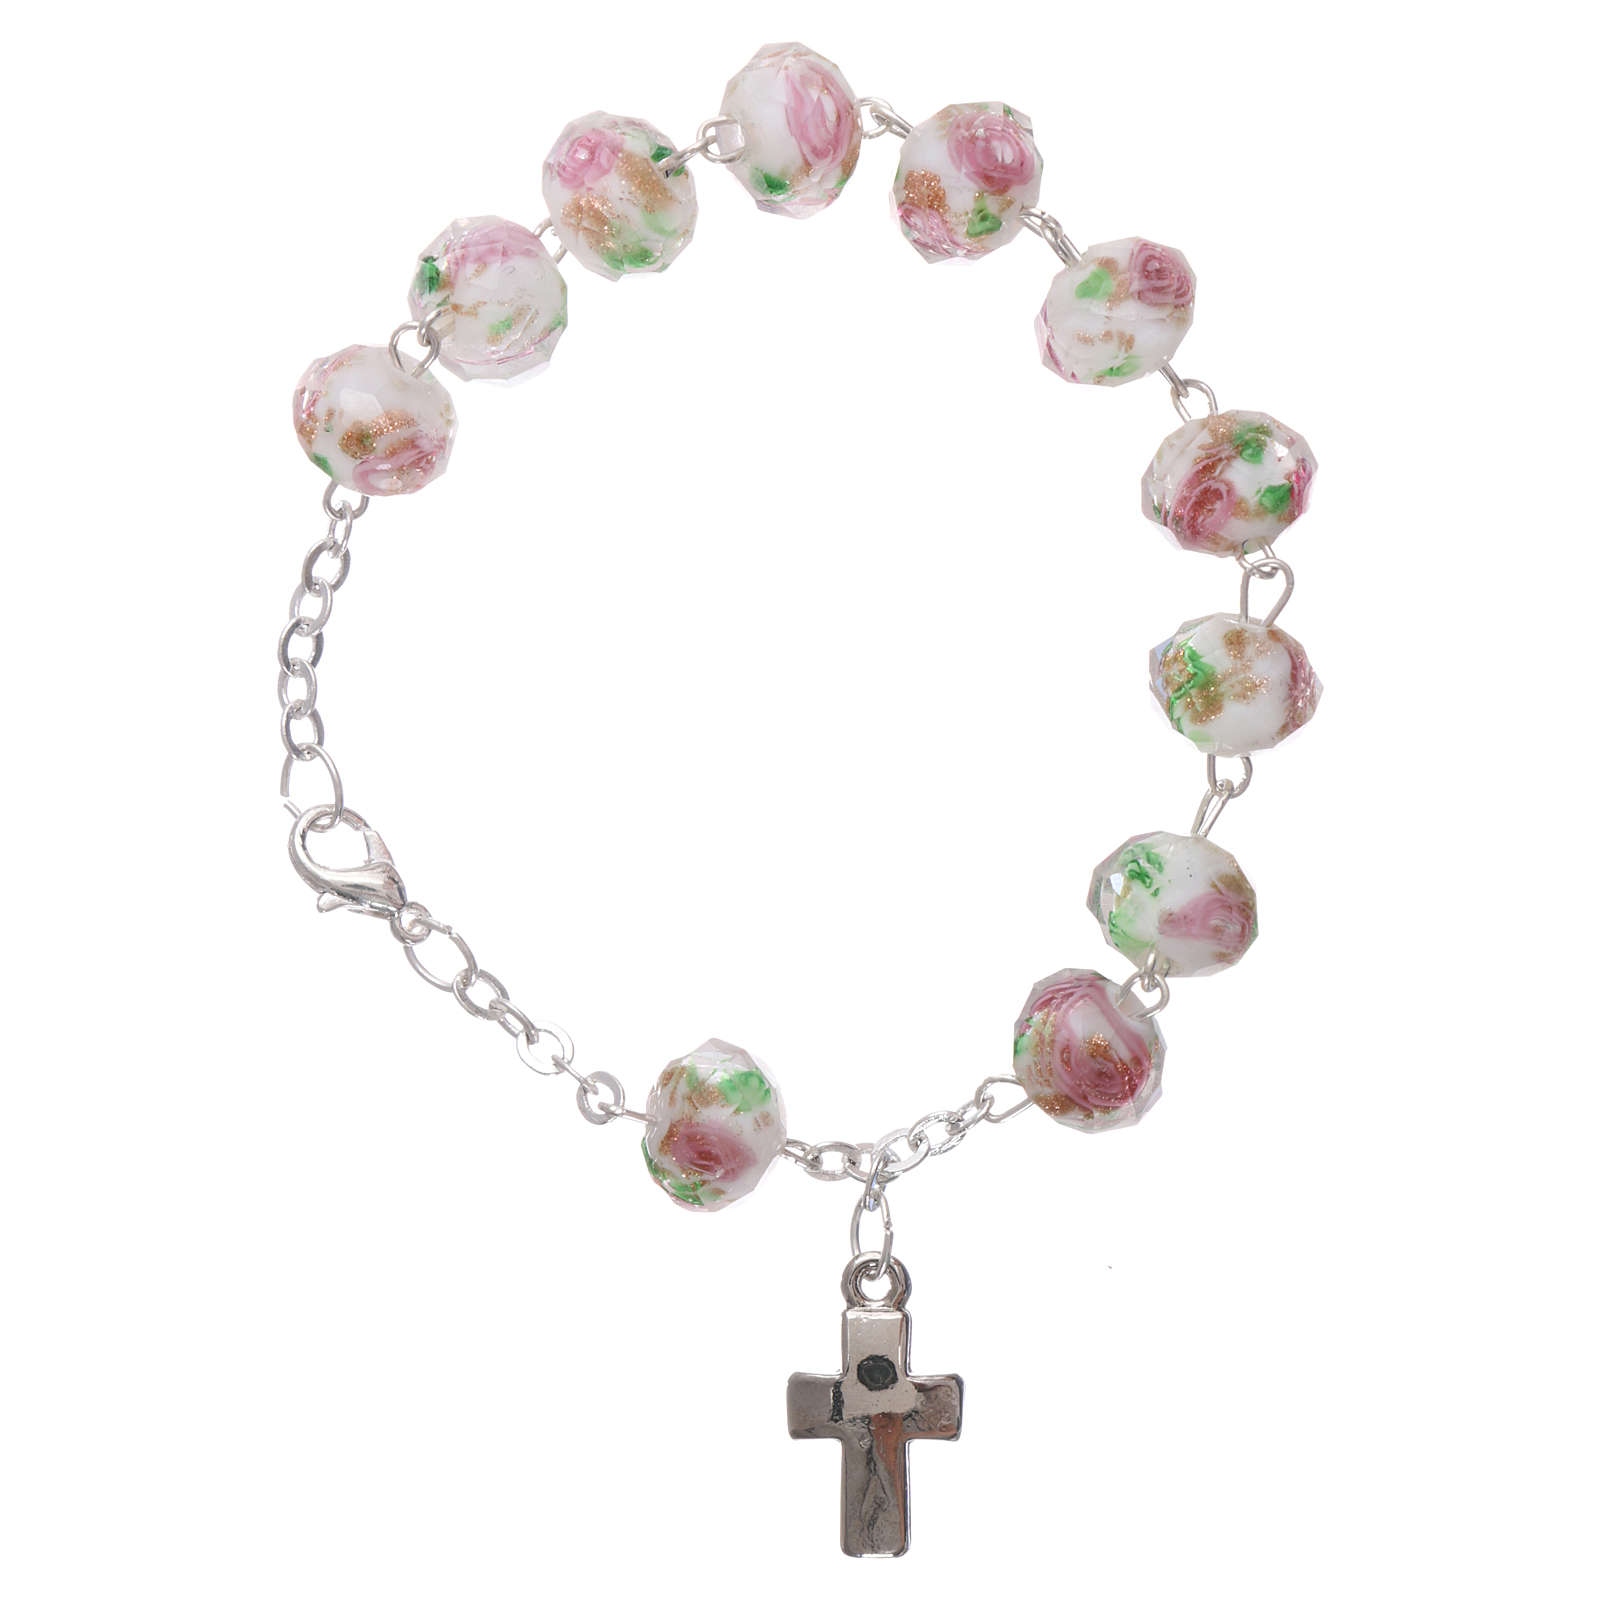 Rosary bracelet with 5x5 mm faceted white grains and roses, chain with fastener 4